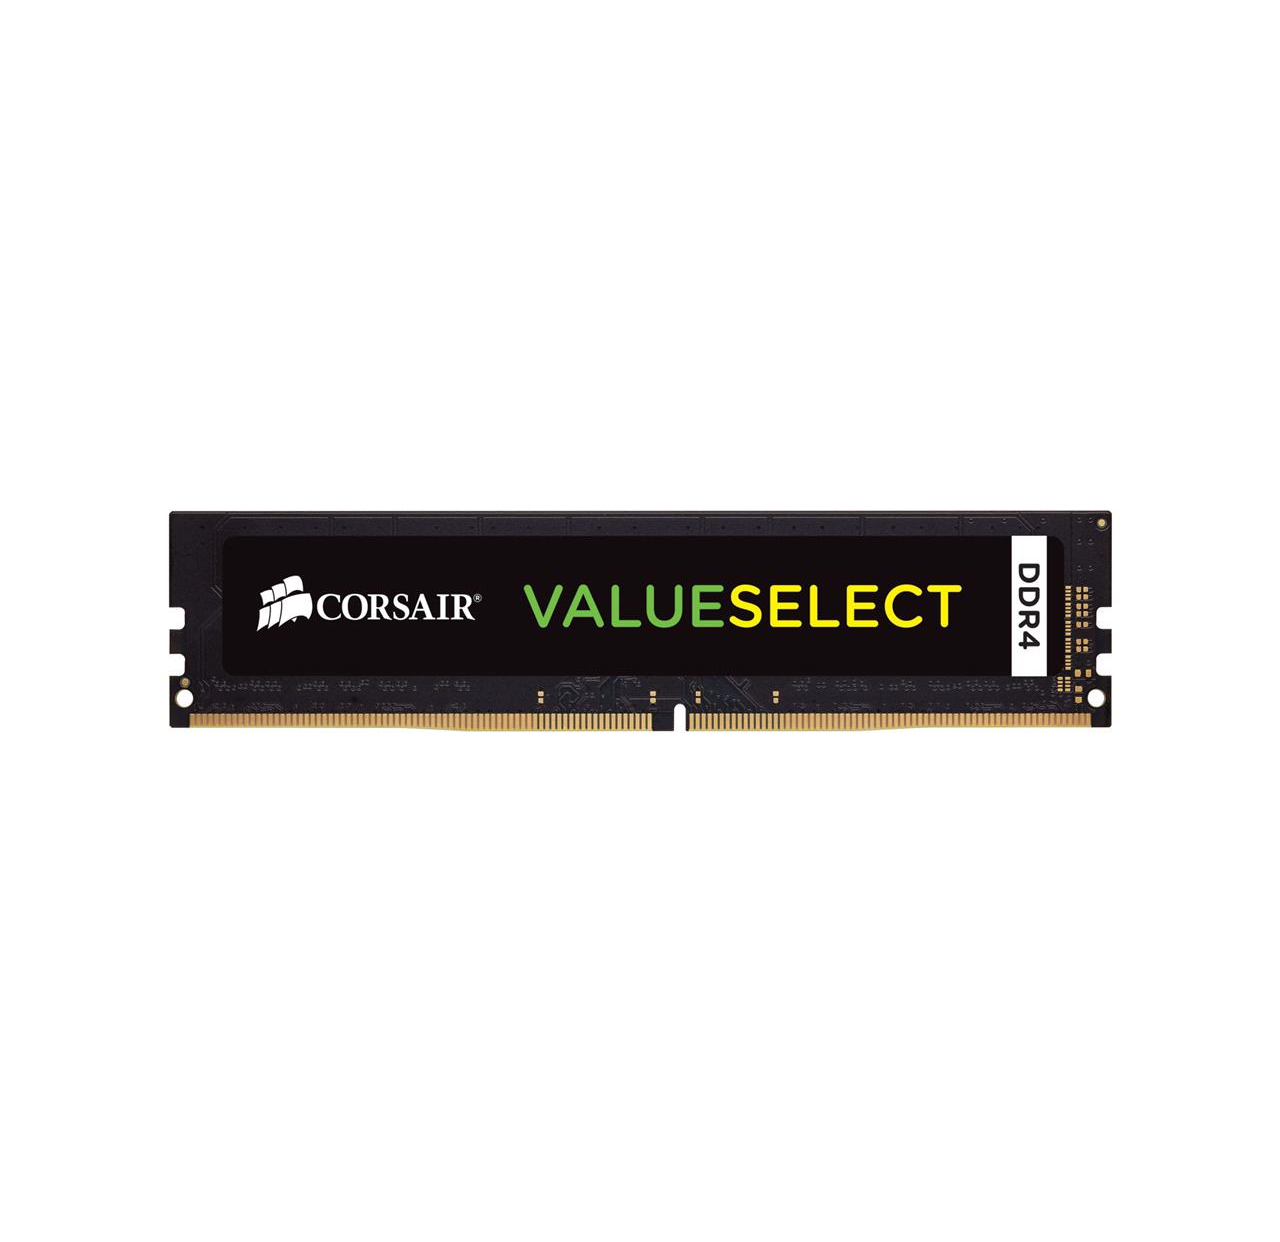 Pamięć RAM Corsair ValueSelect DDR4, 2400MHZ 4GB DIMM 1.20V, Unbuffered,